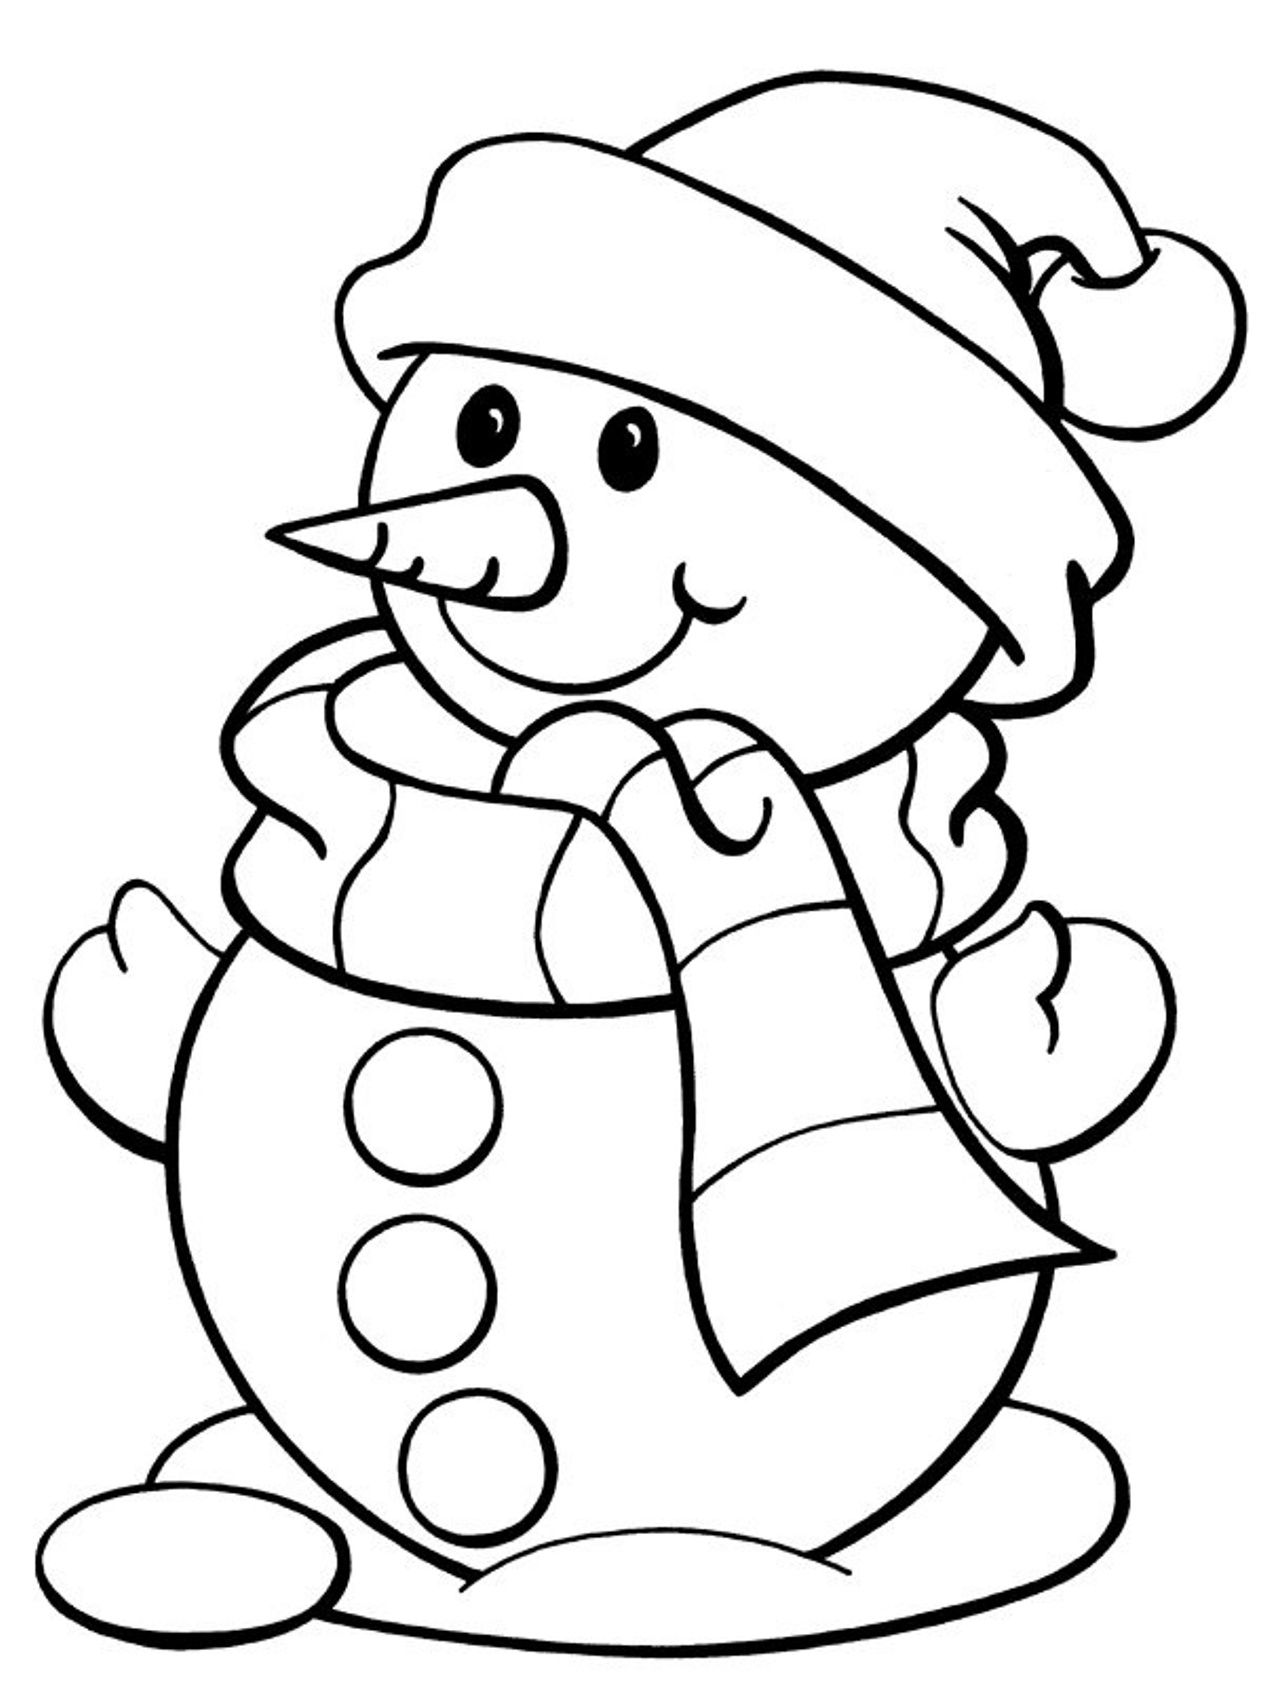 Free Printable Winter Coloring Pages For Kids | coloring sheets winter animals